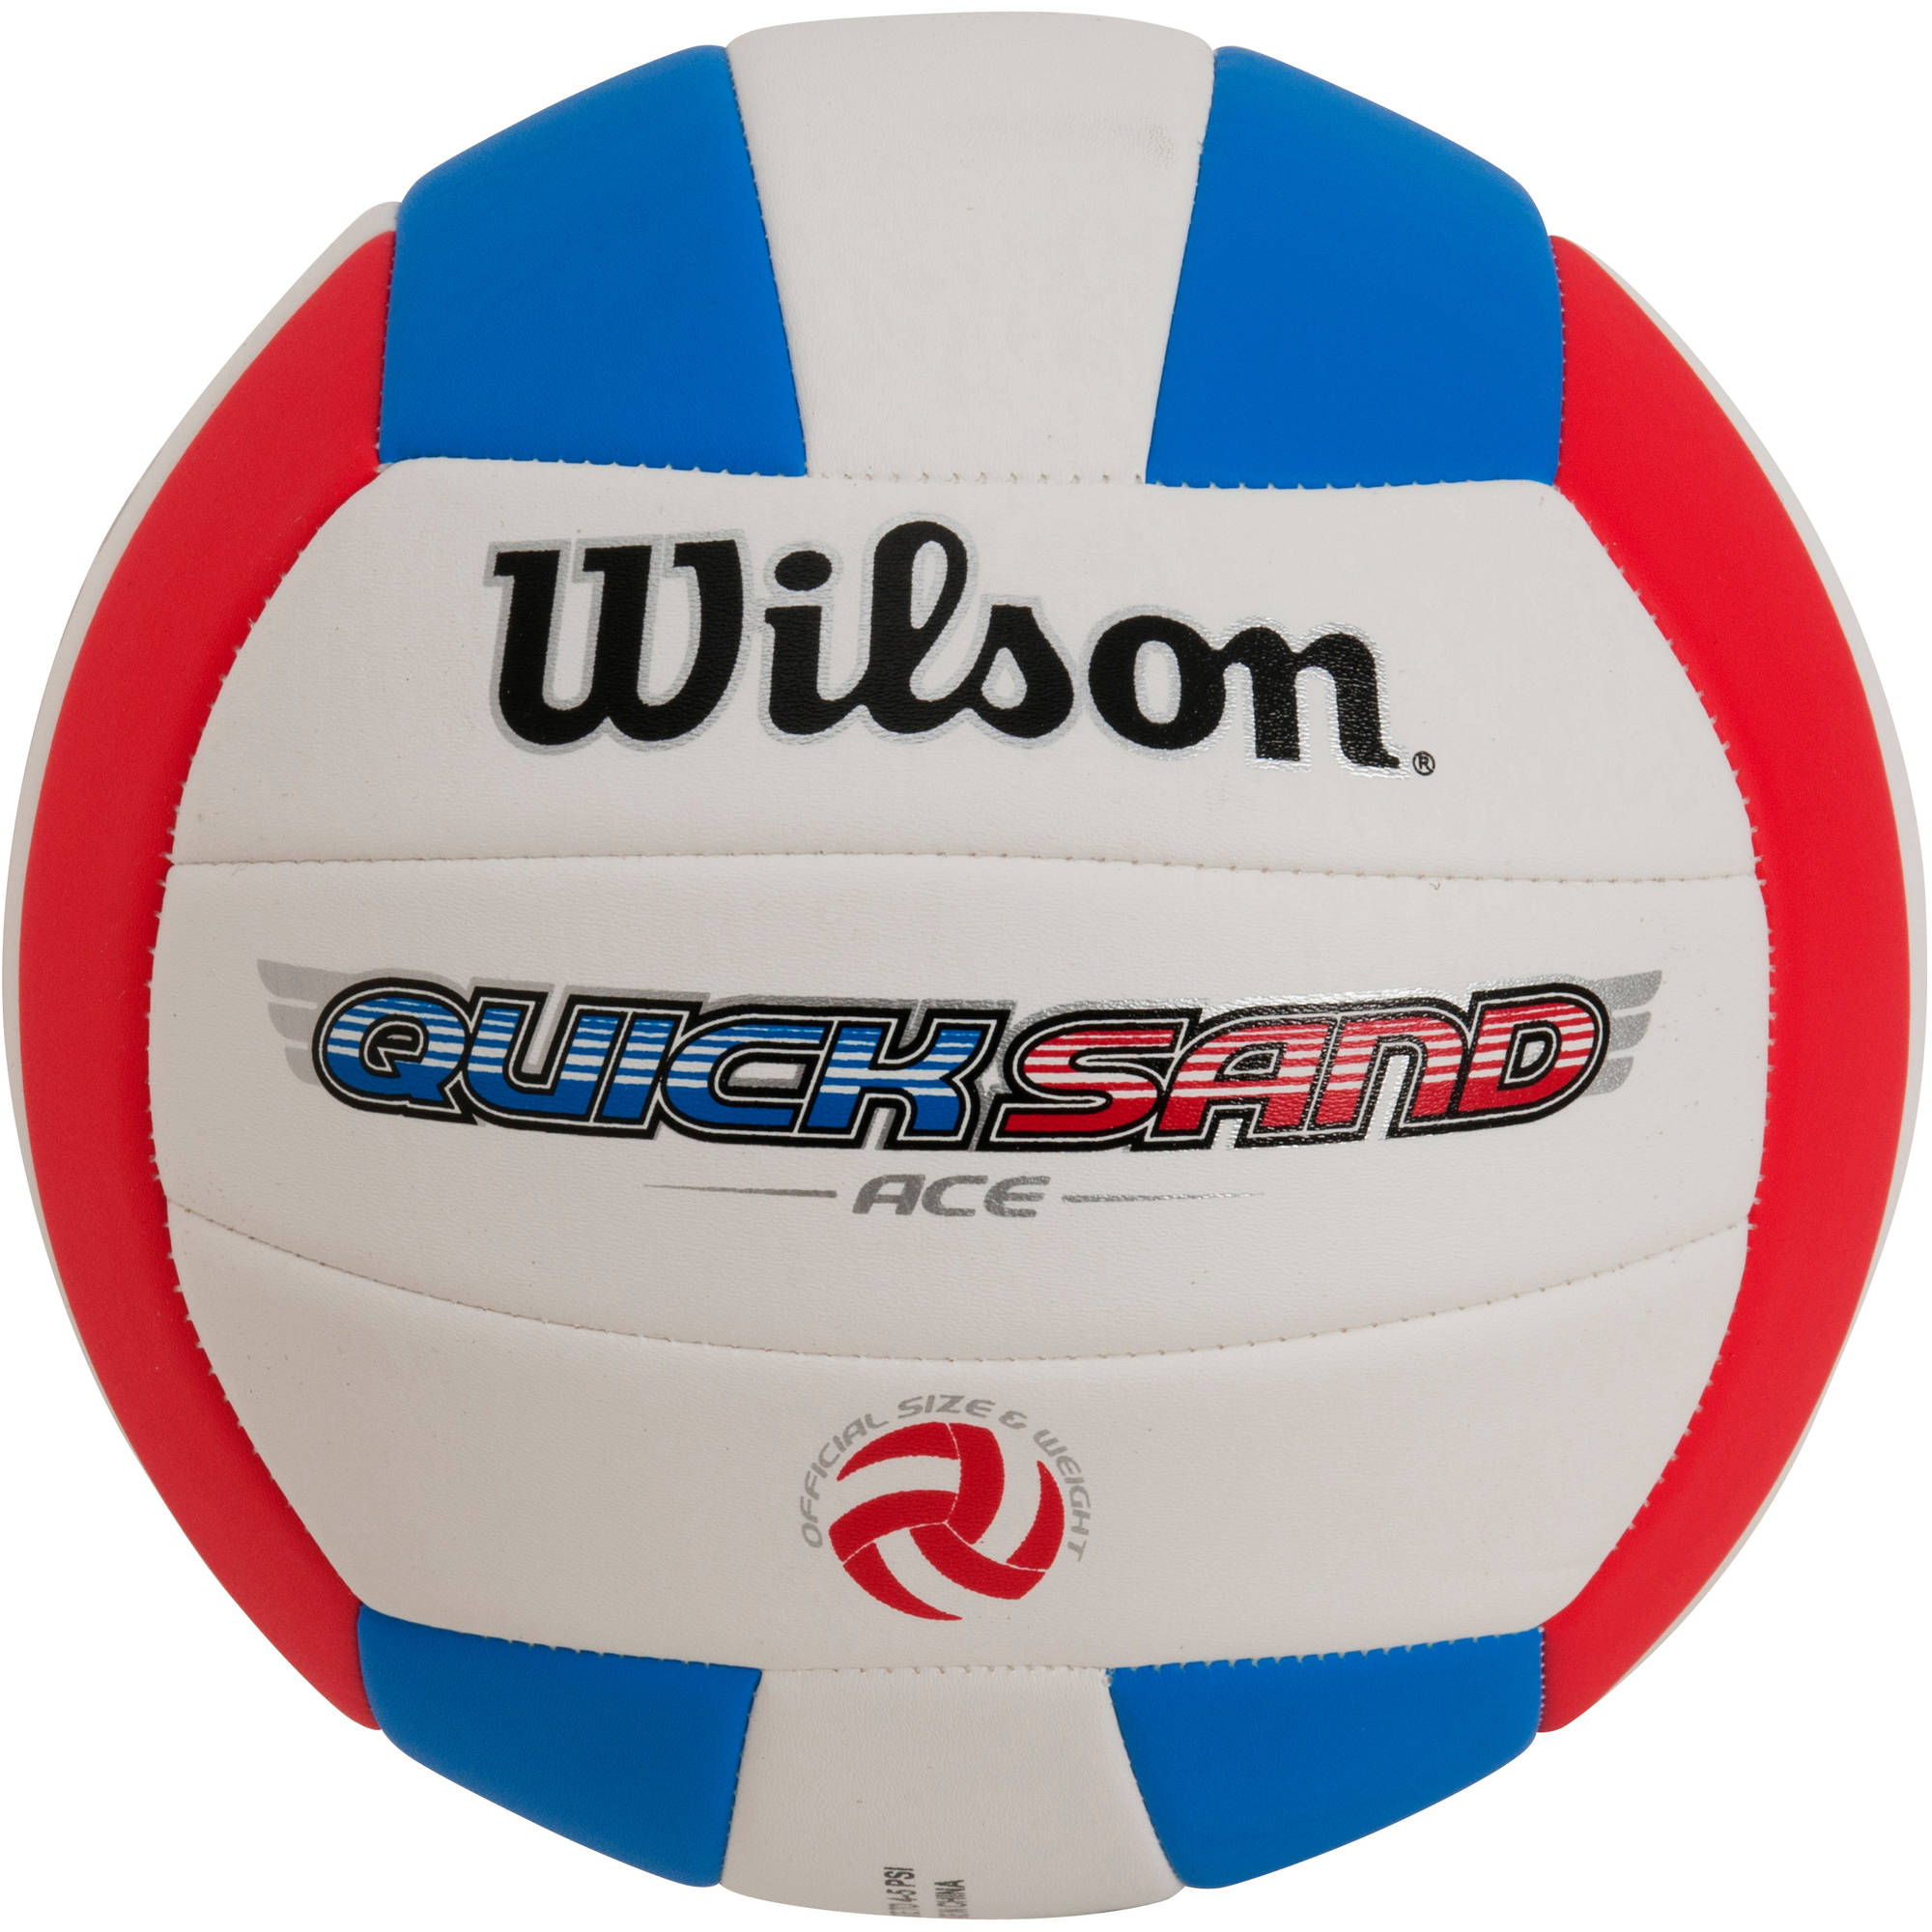 Wilson Quicksand Spike Volleyball